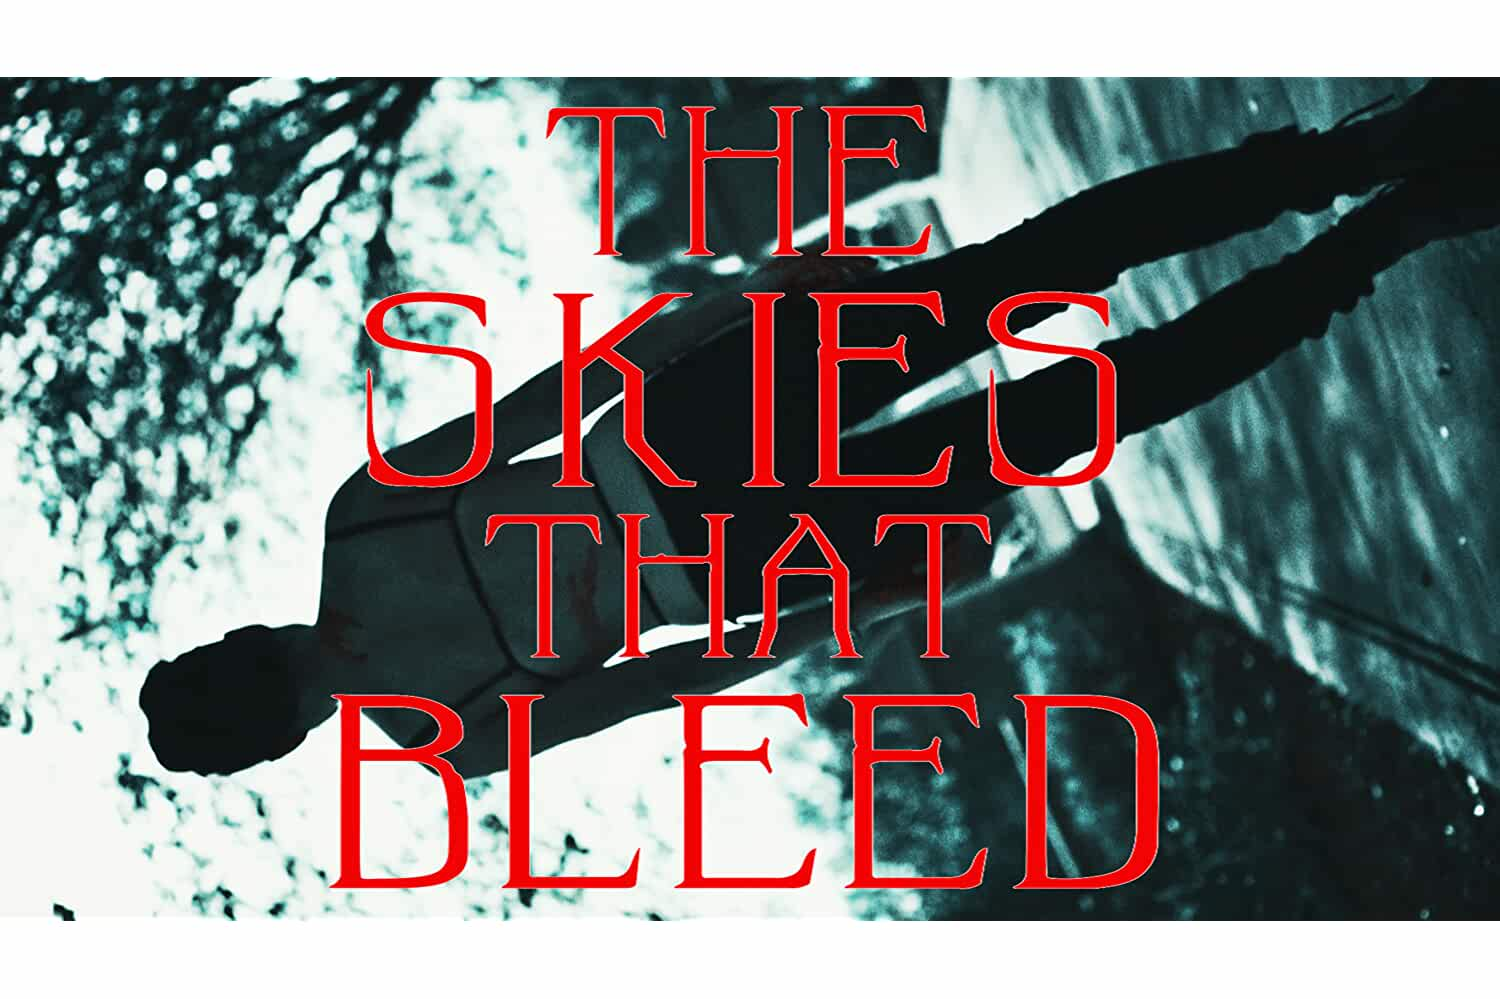 The Skies That Bleed (2019)